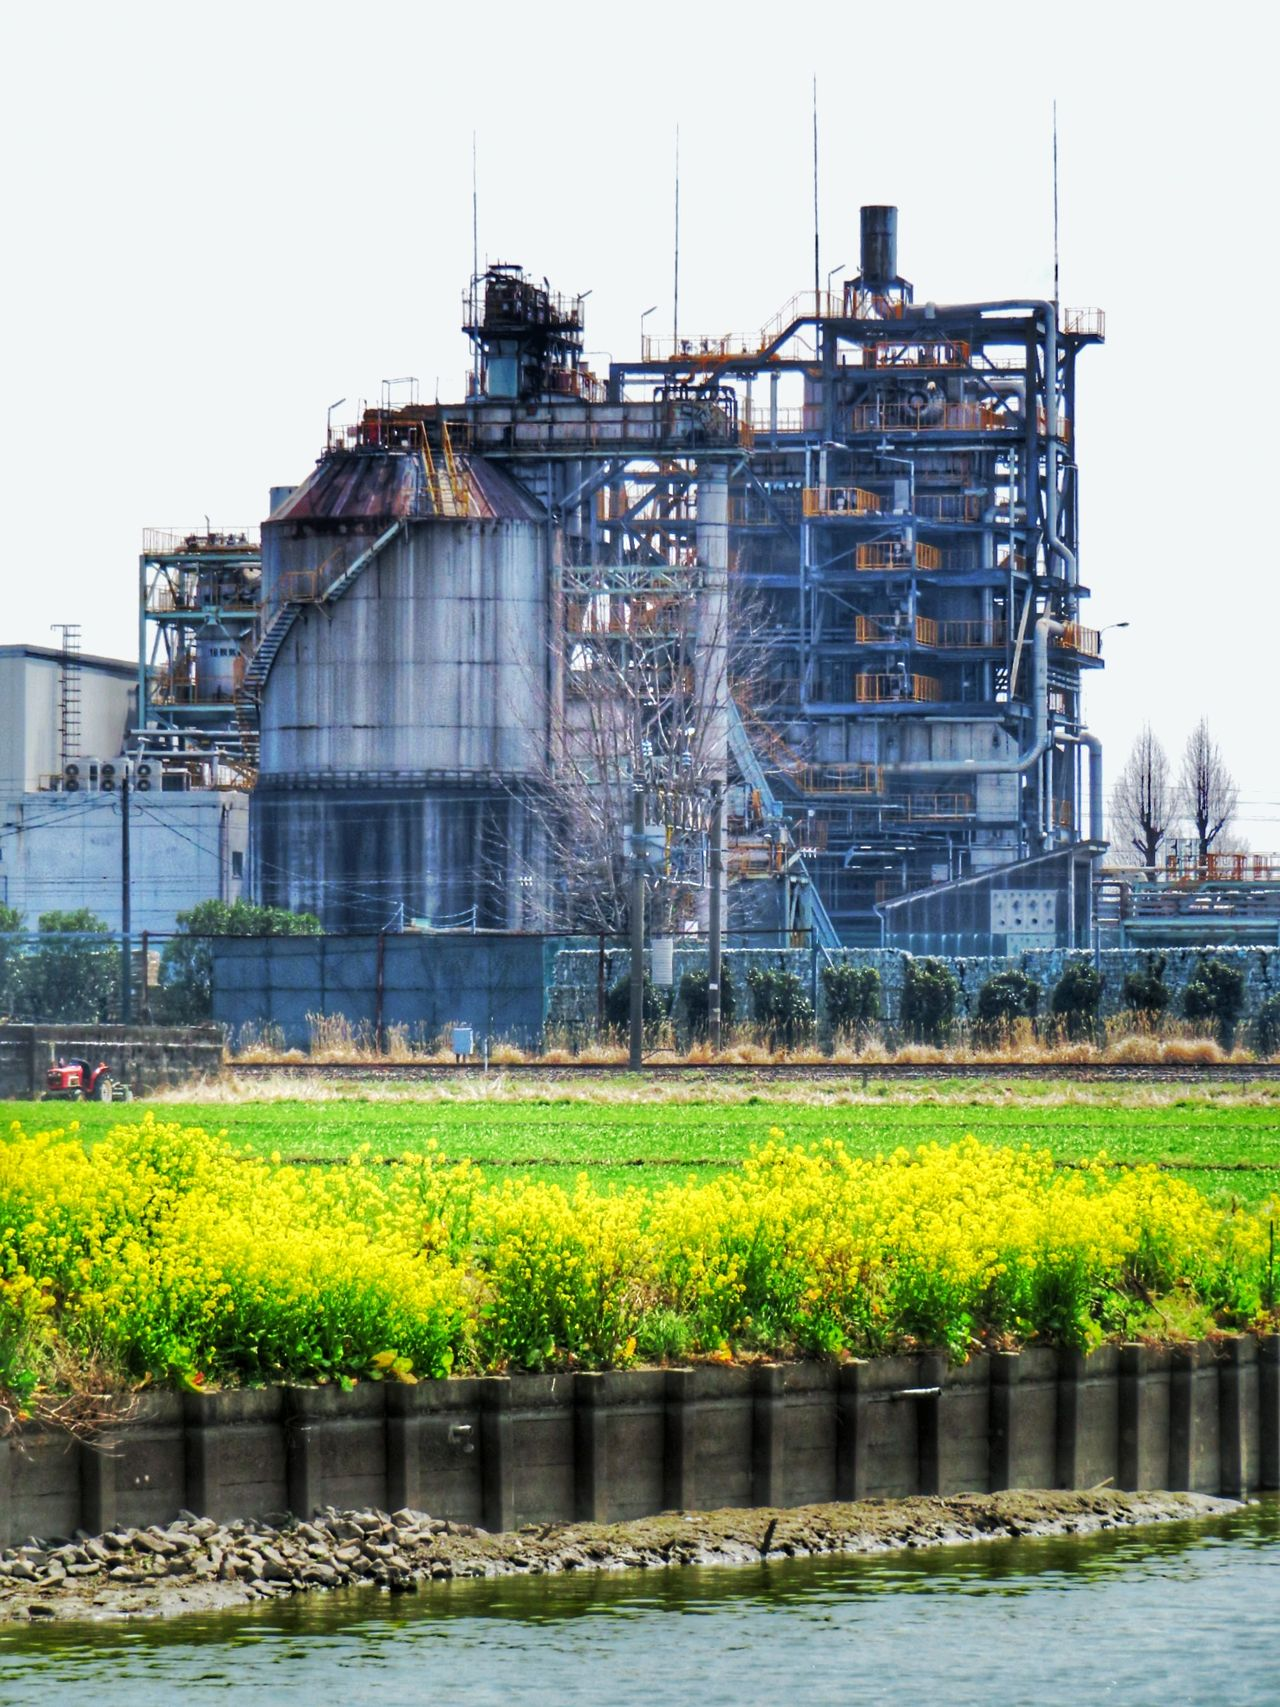 Factory Factory Building Factory Night View Factory Photo Factory Chimney Architecture Building Exterior Built Structure Growth Day Industry Outdoors Nature Sky Flower Spring Springtime Beauty In Nature 菜の花 工場 工場萌え Industrial Building  ロードバイク サイクリング 自転車